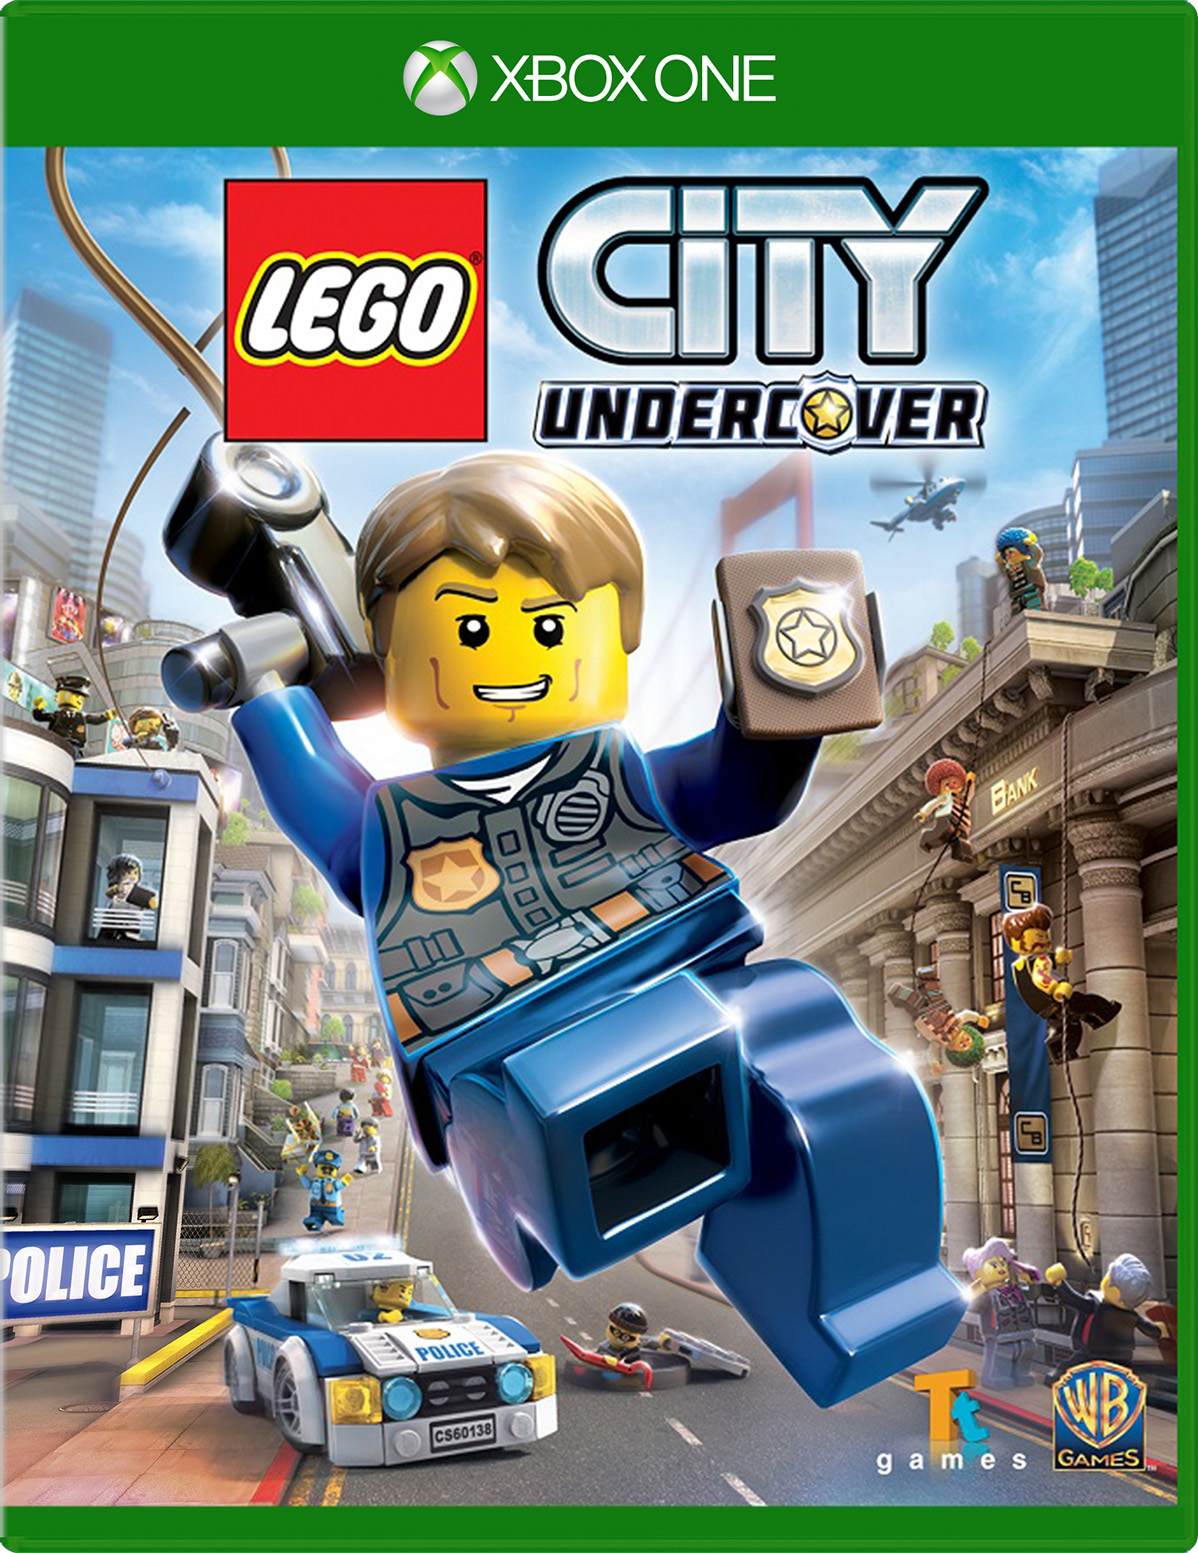 LEGO CITY Undercover for Xbox One QH4-00560